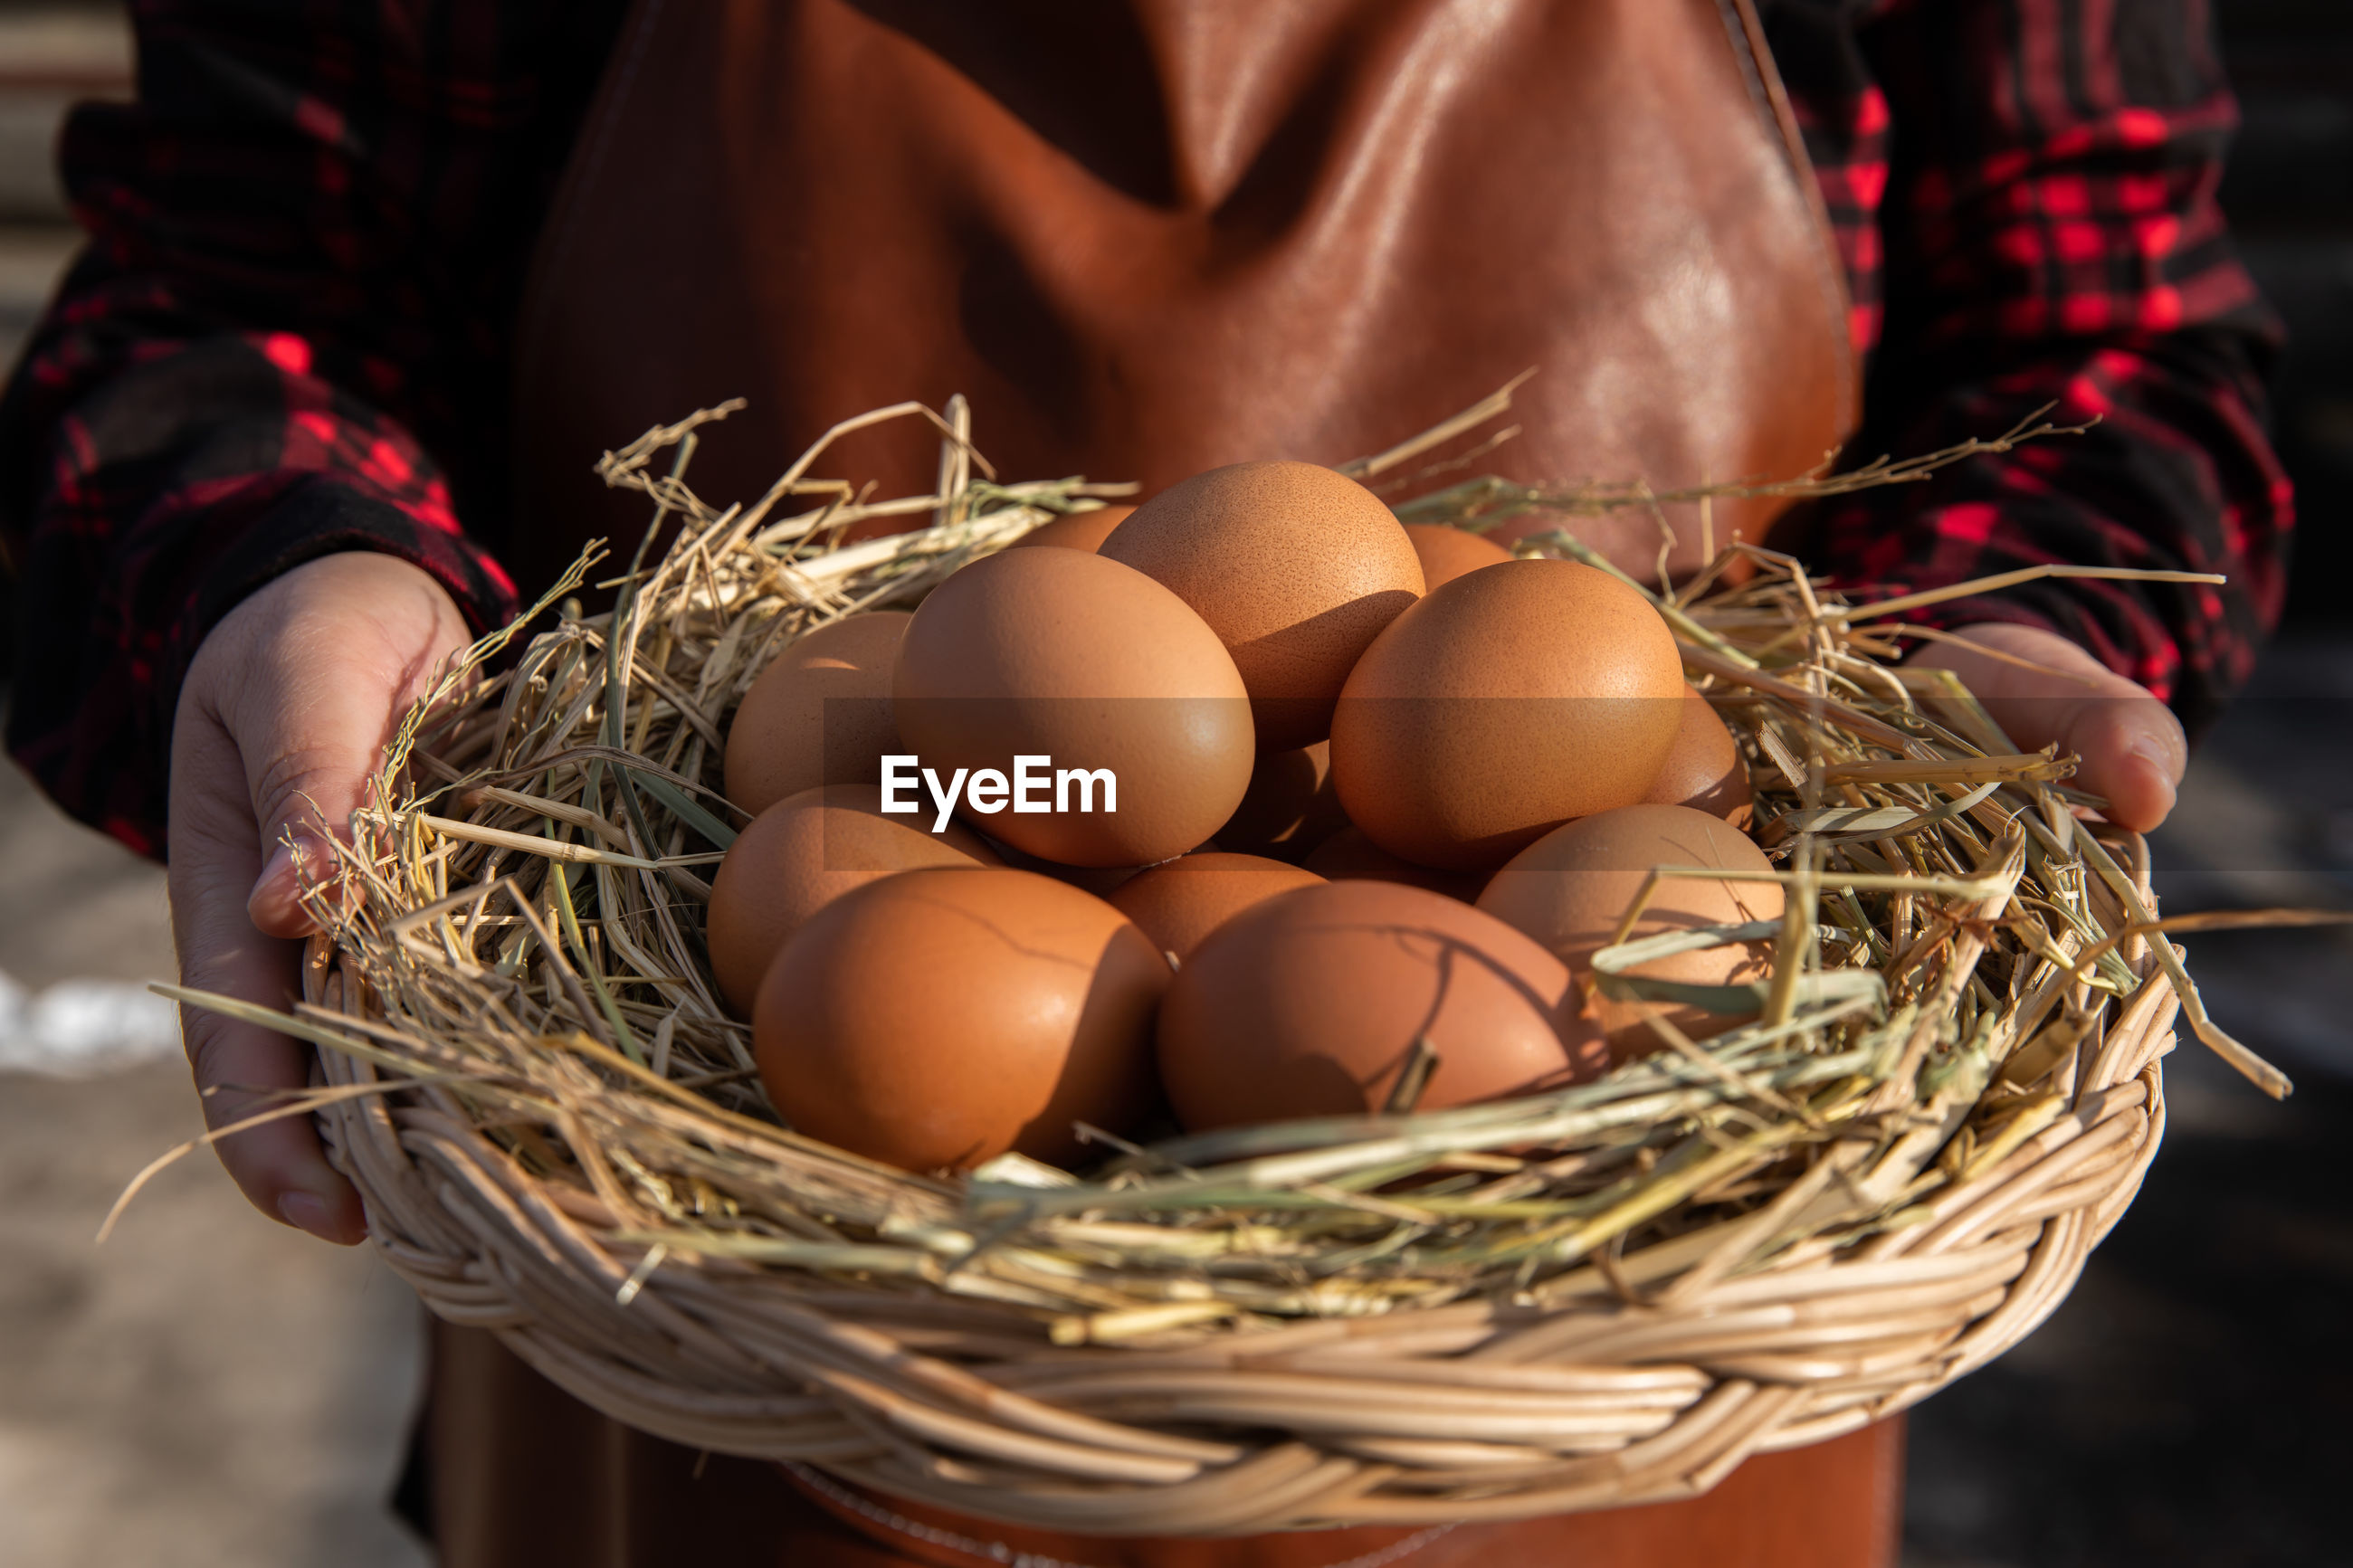 CLOSE-UP OF EGGS IN WICKER BASKET